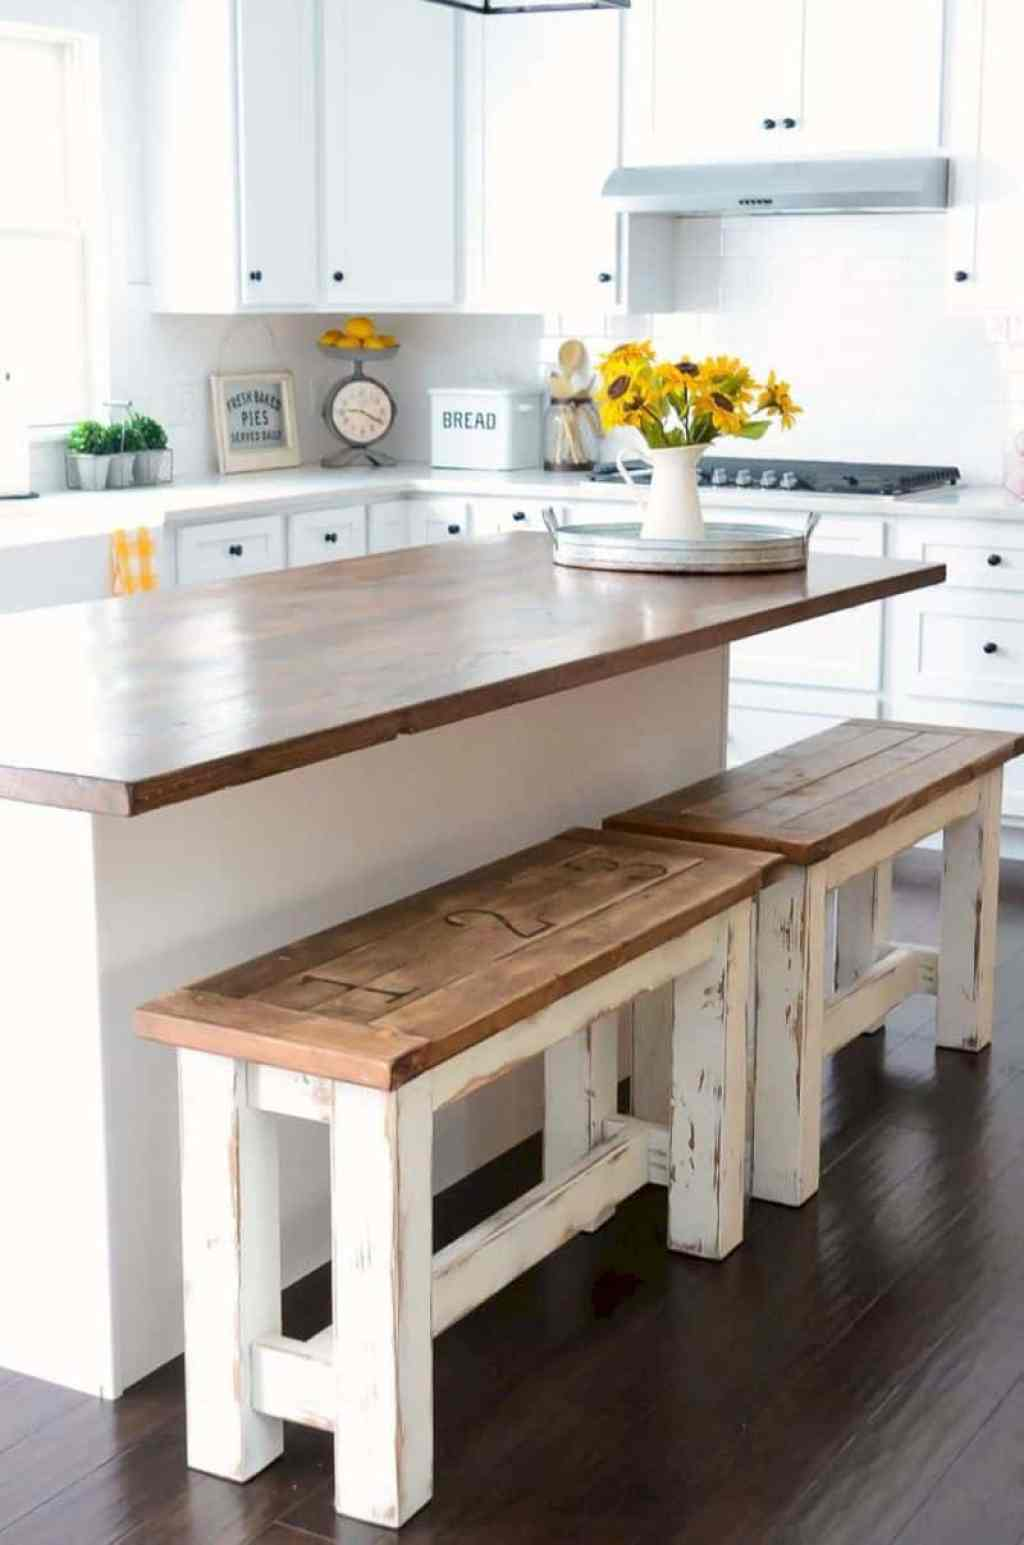 Joanna Gaines Farmhouse Bar Stools 10 Farmhouse Kitchen Decor Ideas That Would Make Joanna